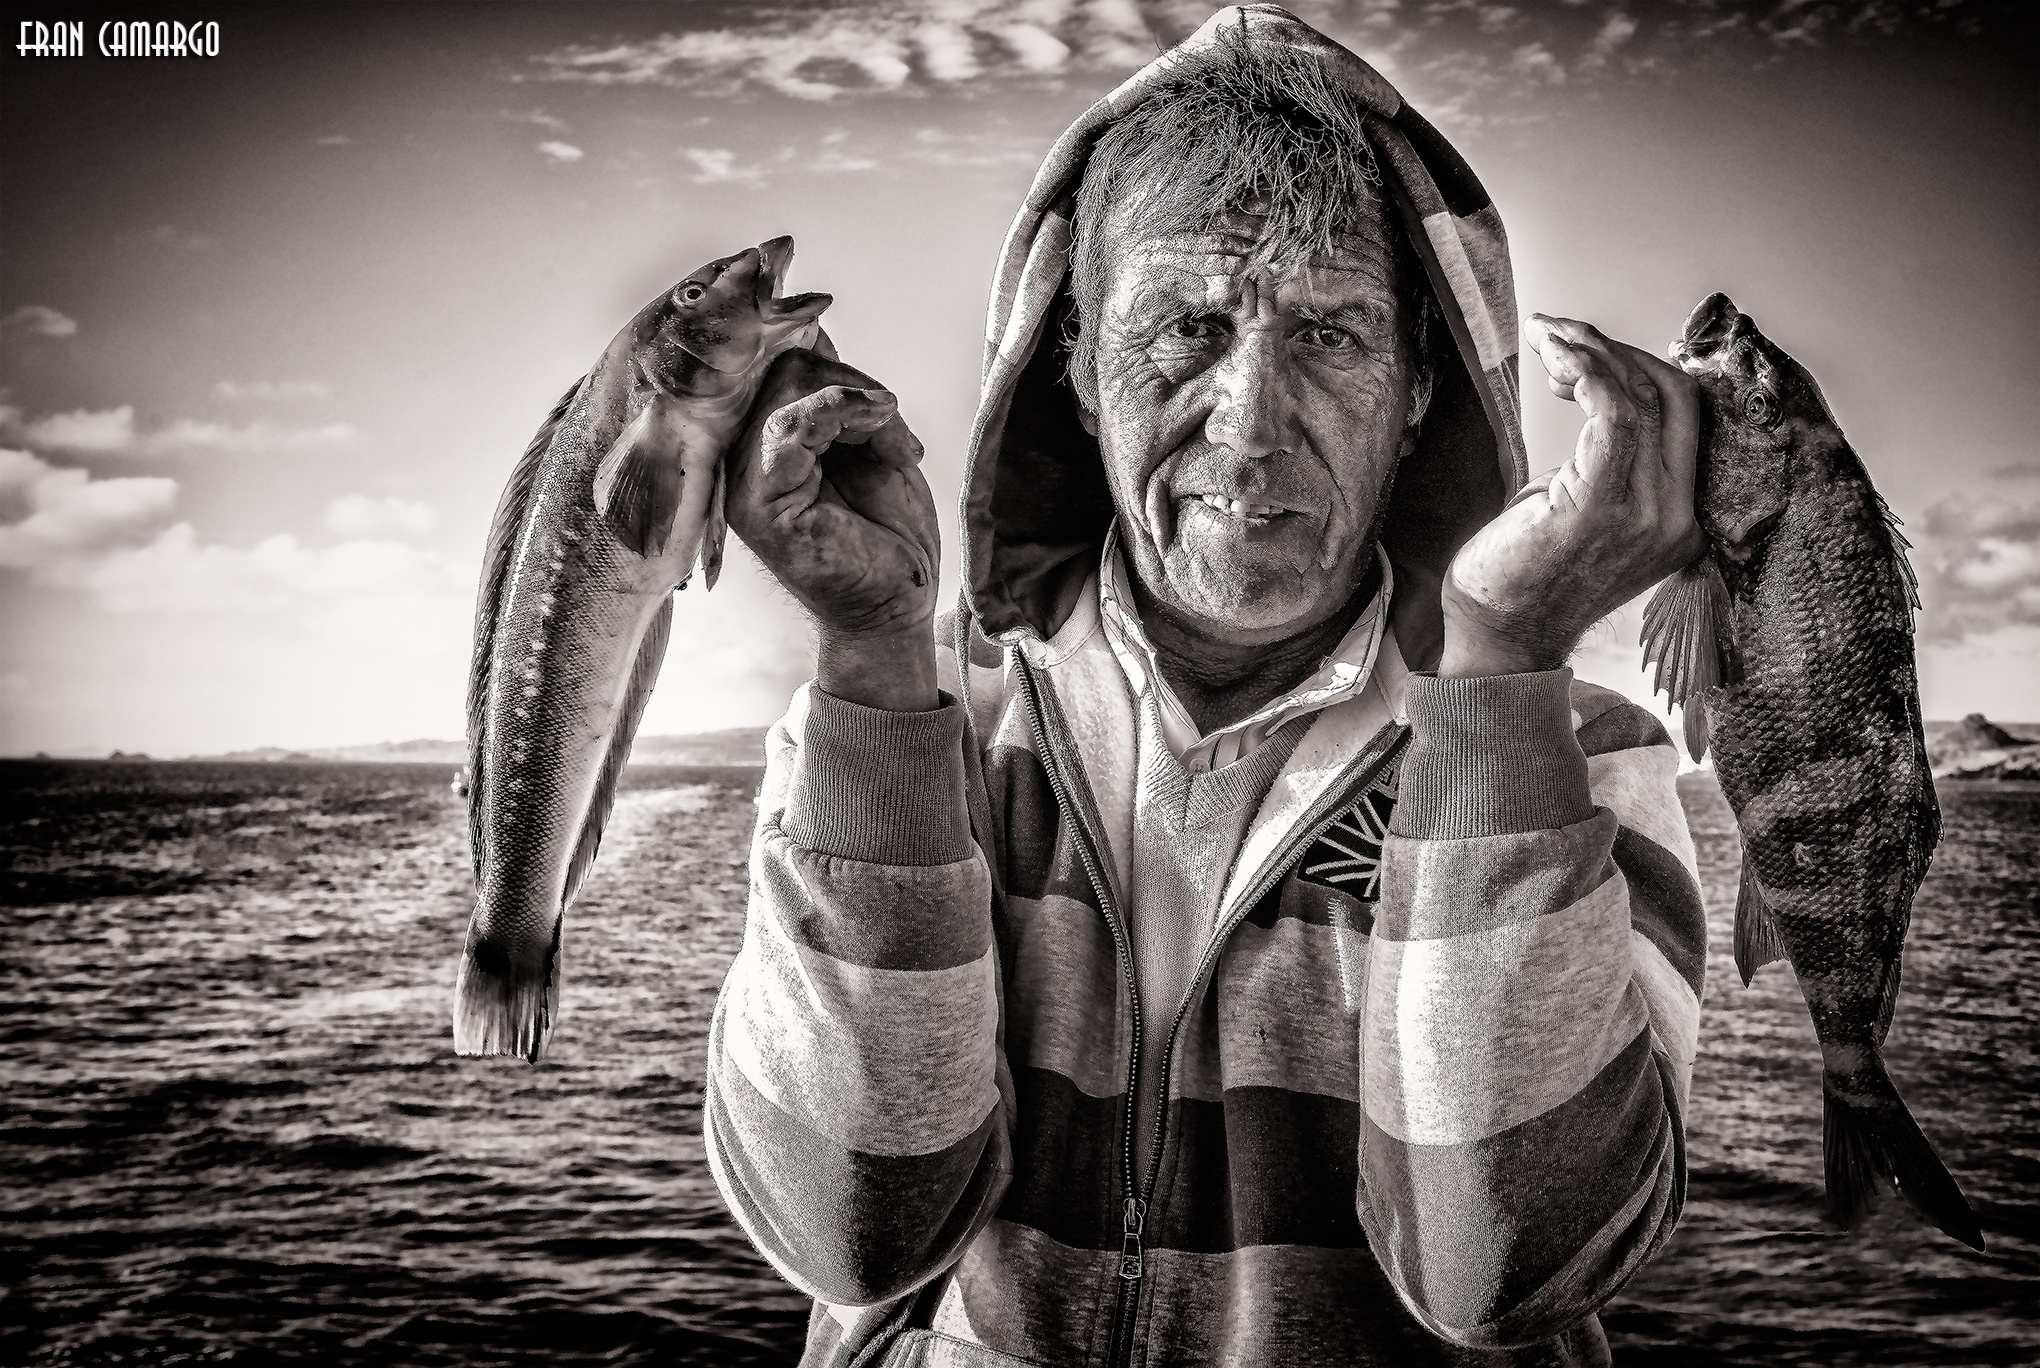 Fisherman by Fran Camargo